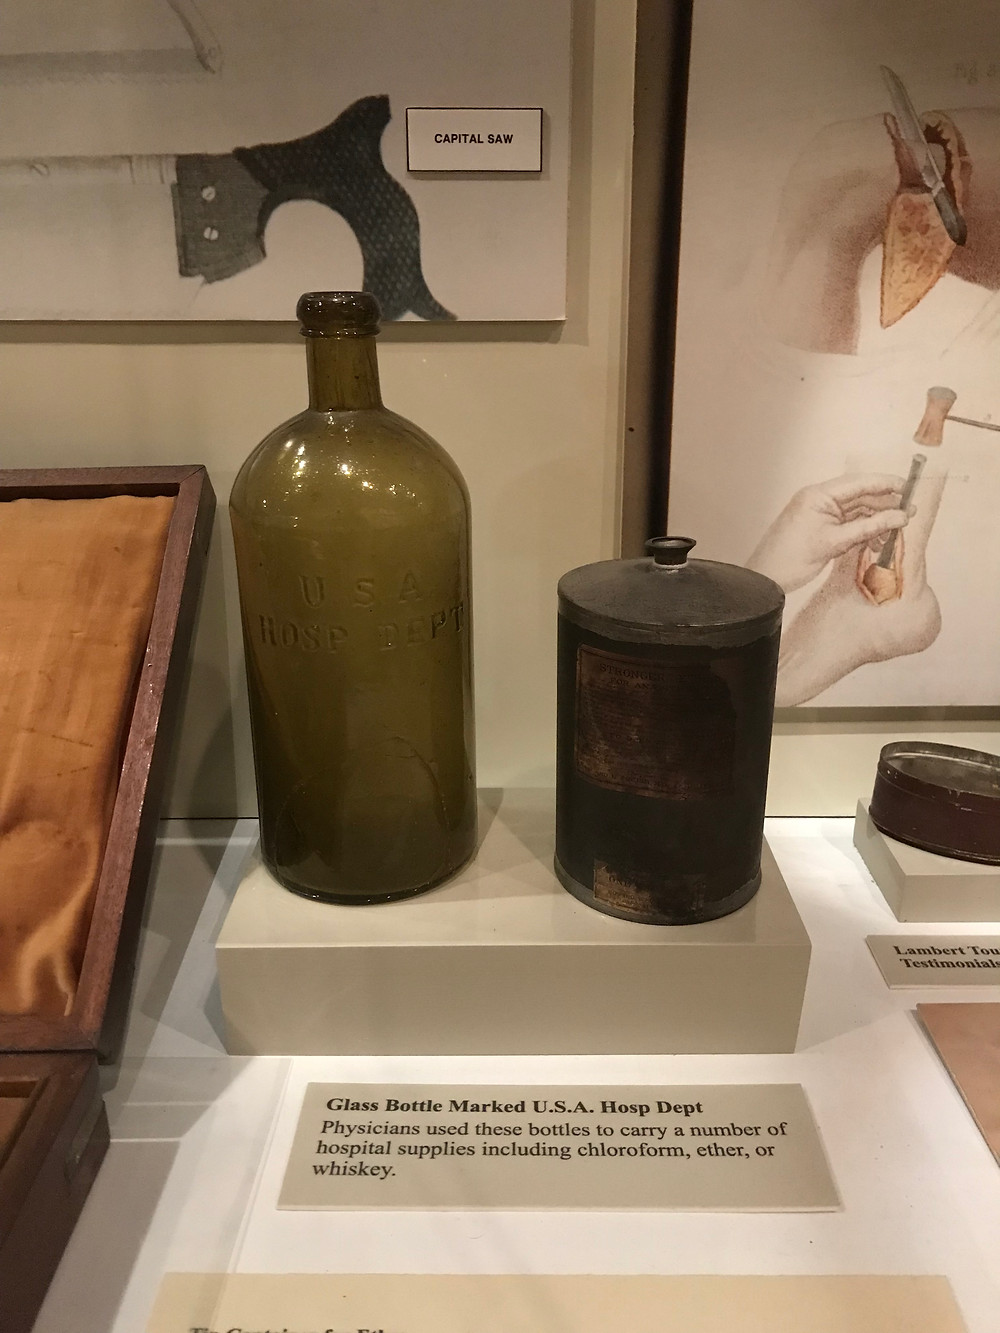 U.S.A. Hosp Dept bottle